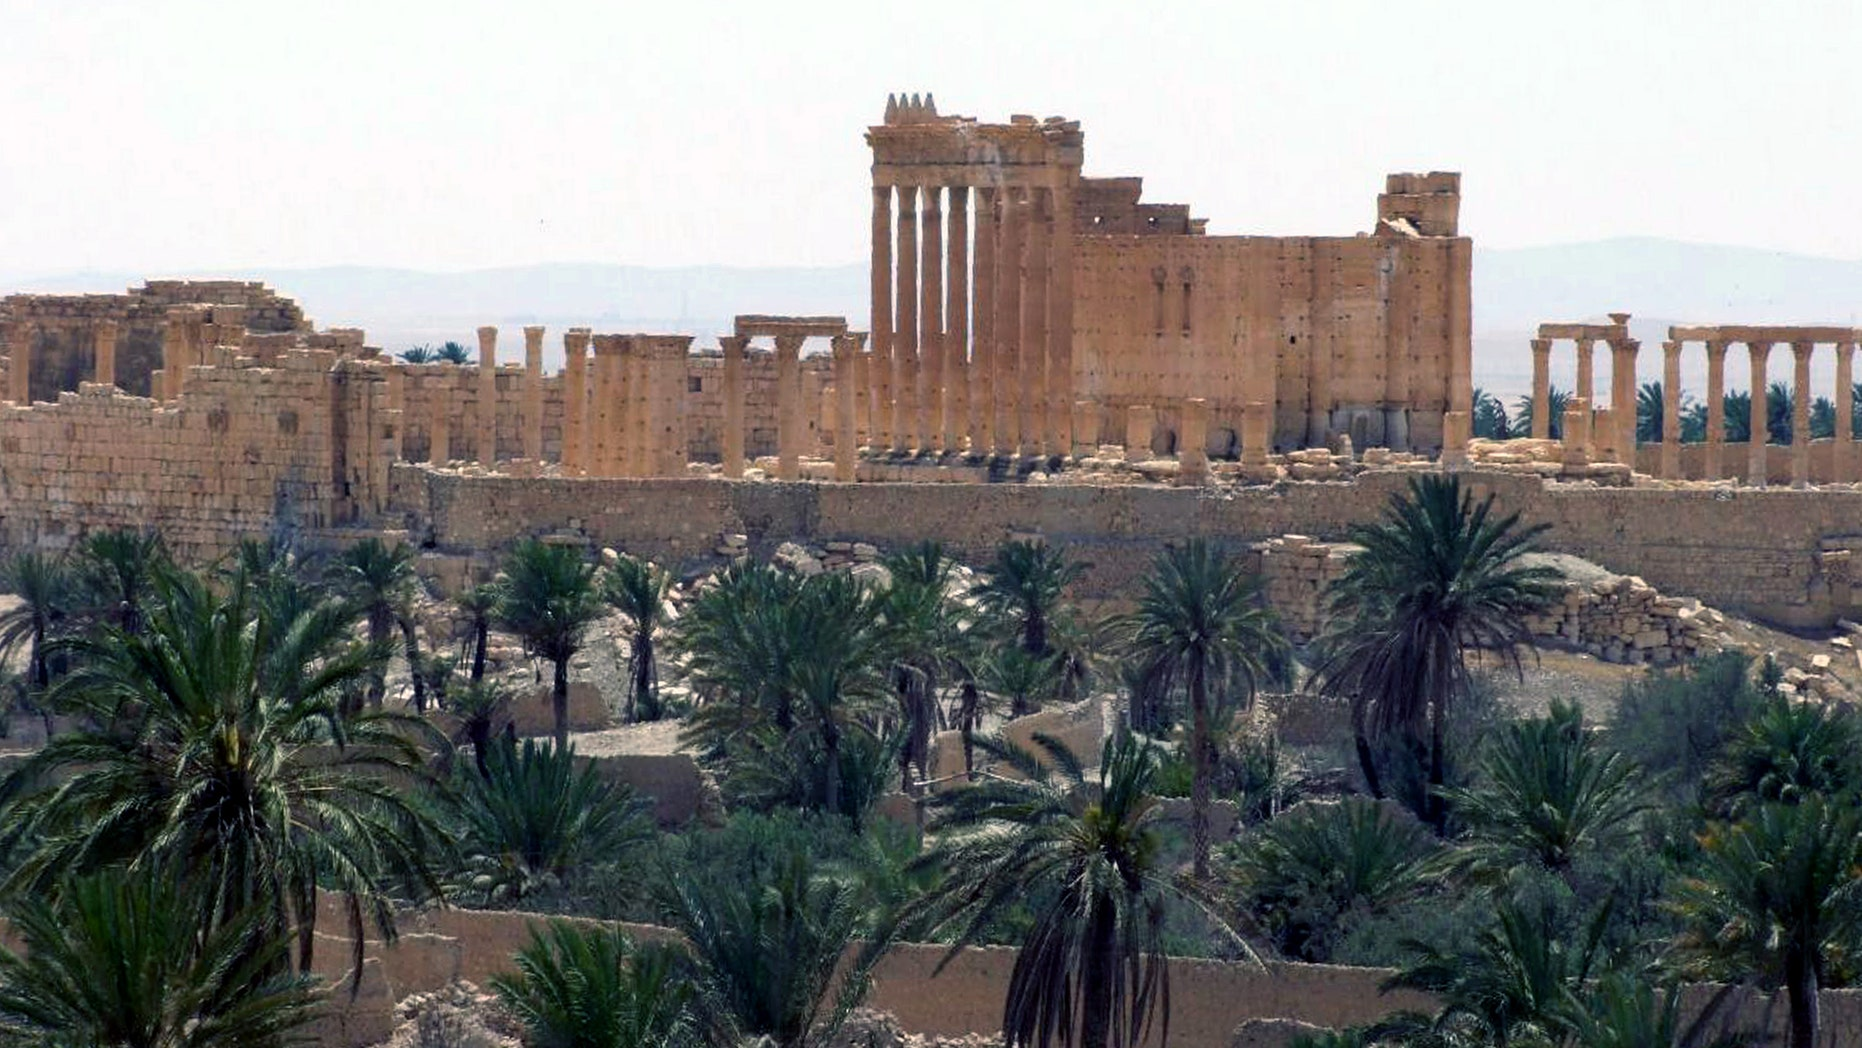 FILE photo released on Sunday, May 17, 2015, by the Syrian official news agency SANA, shows the general view of the ancient Roman city of Palmyra, northeast of Damascus, Syria.